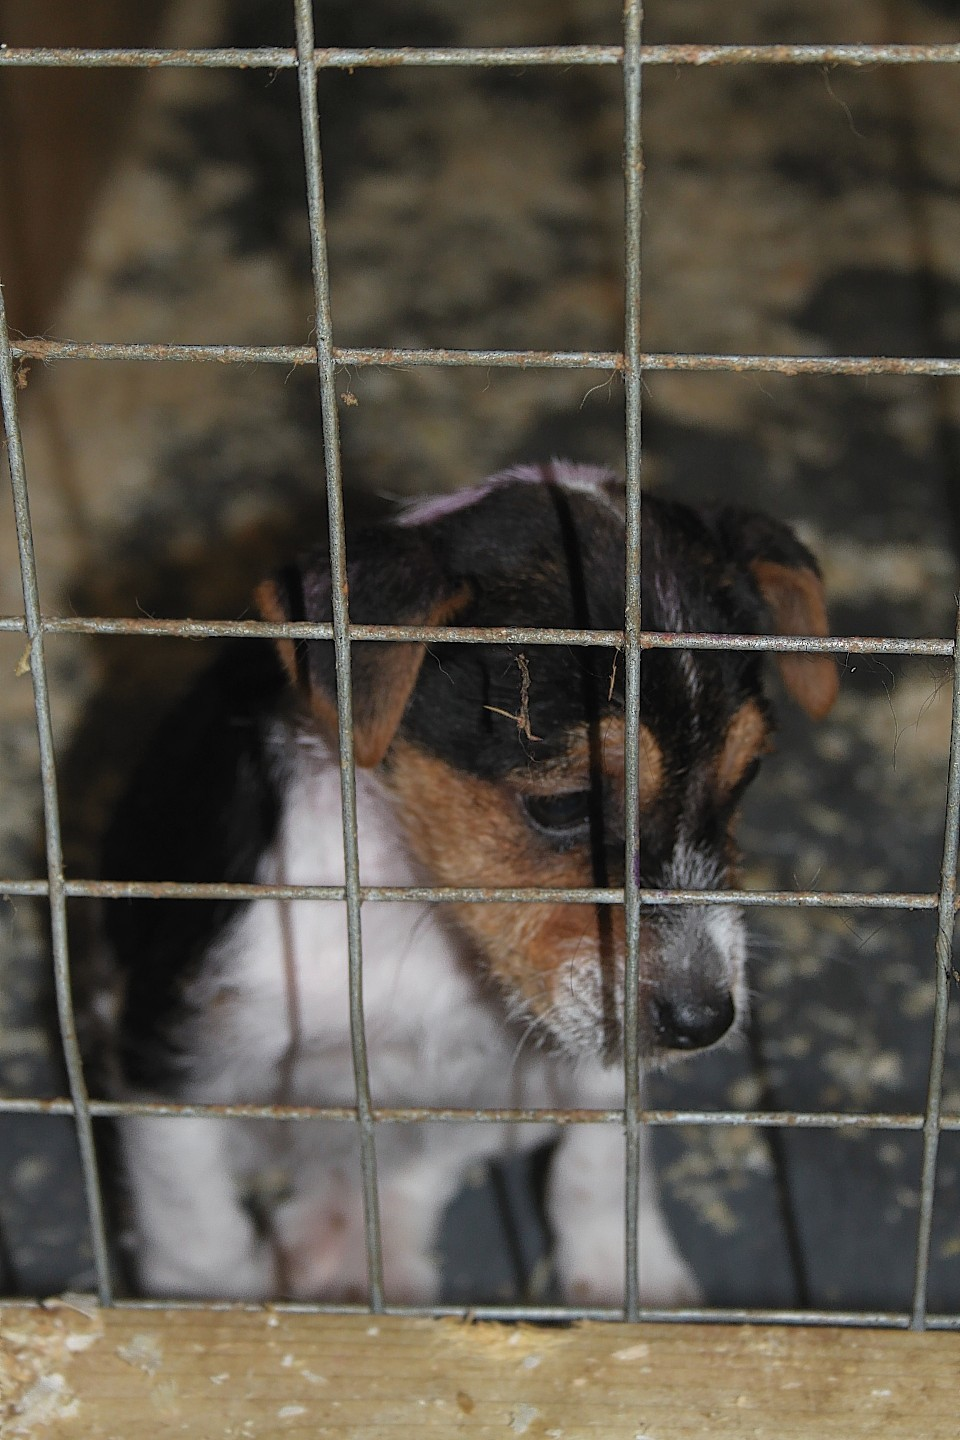 North-east MSP is pressing for tough regulations to stop puppy farms.